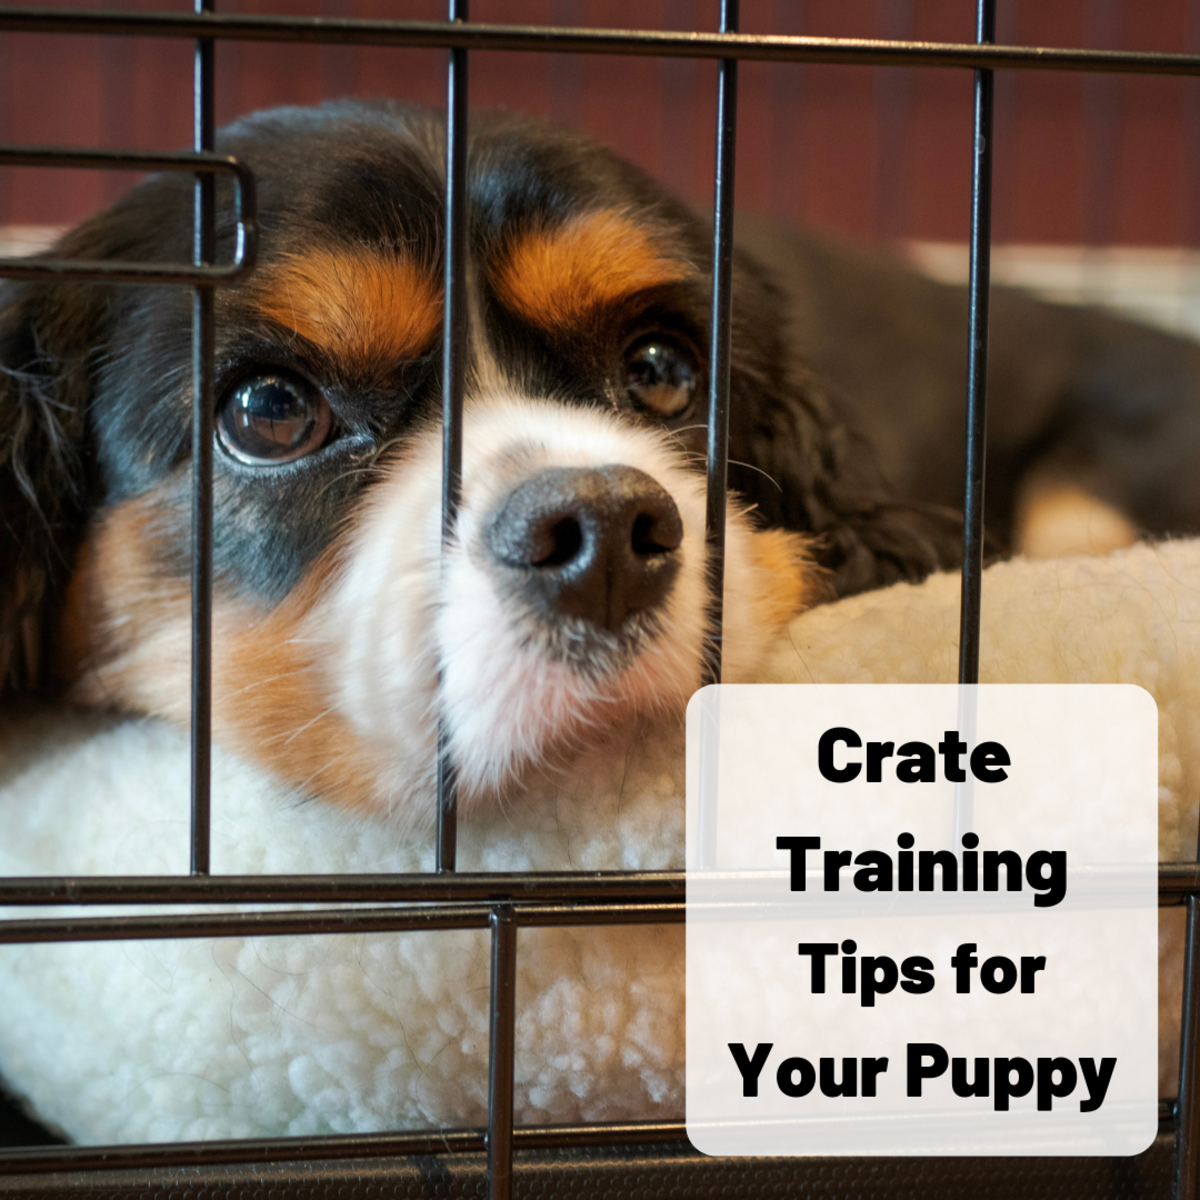 5 Tips on Crate Training: The Nice Way to Crate a Puppy